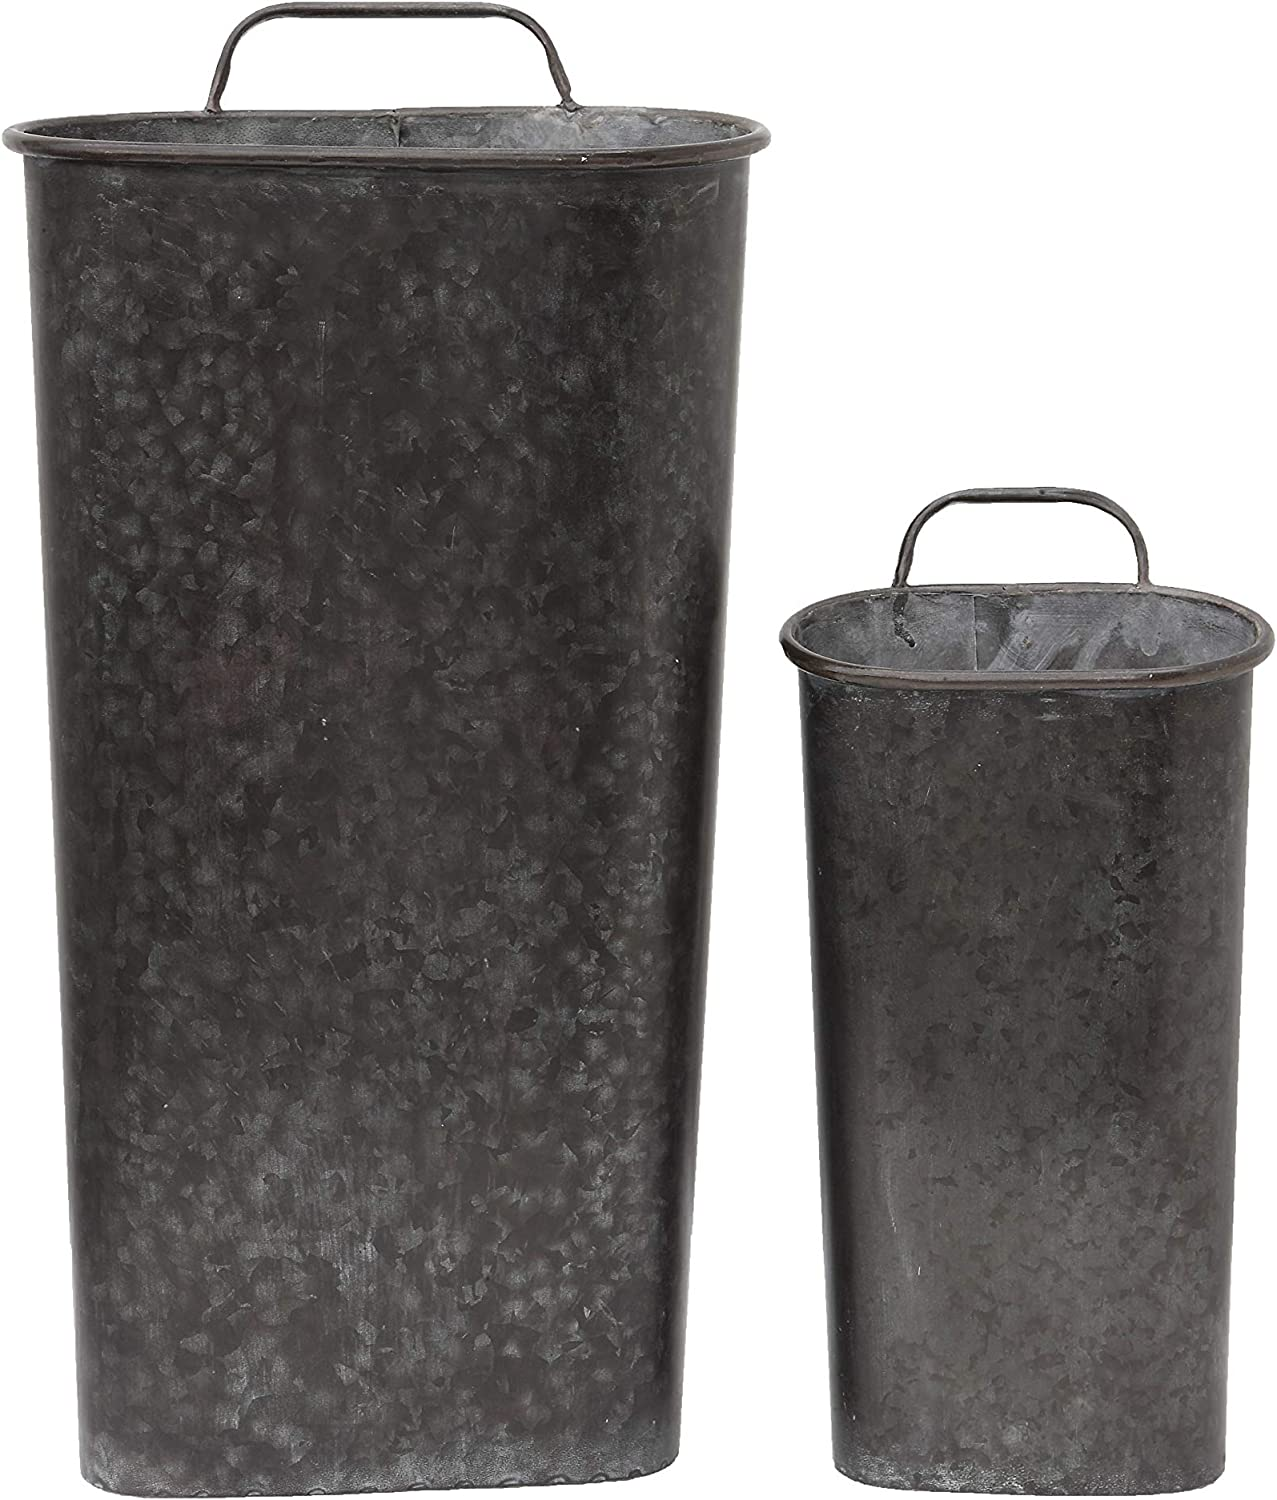 Shipping included Creative shopping Co-Op Tin Wall Buckets with Sizes Set Handles 2 of